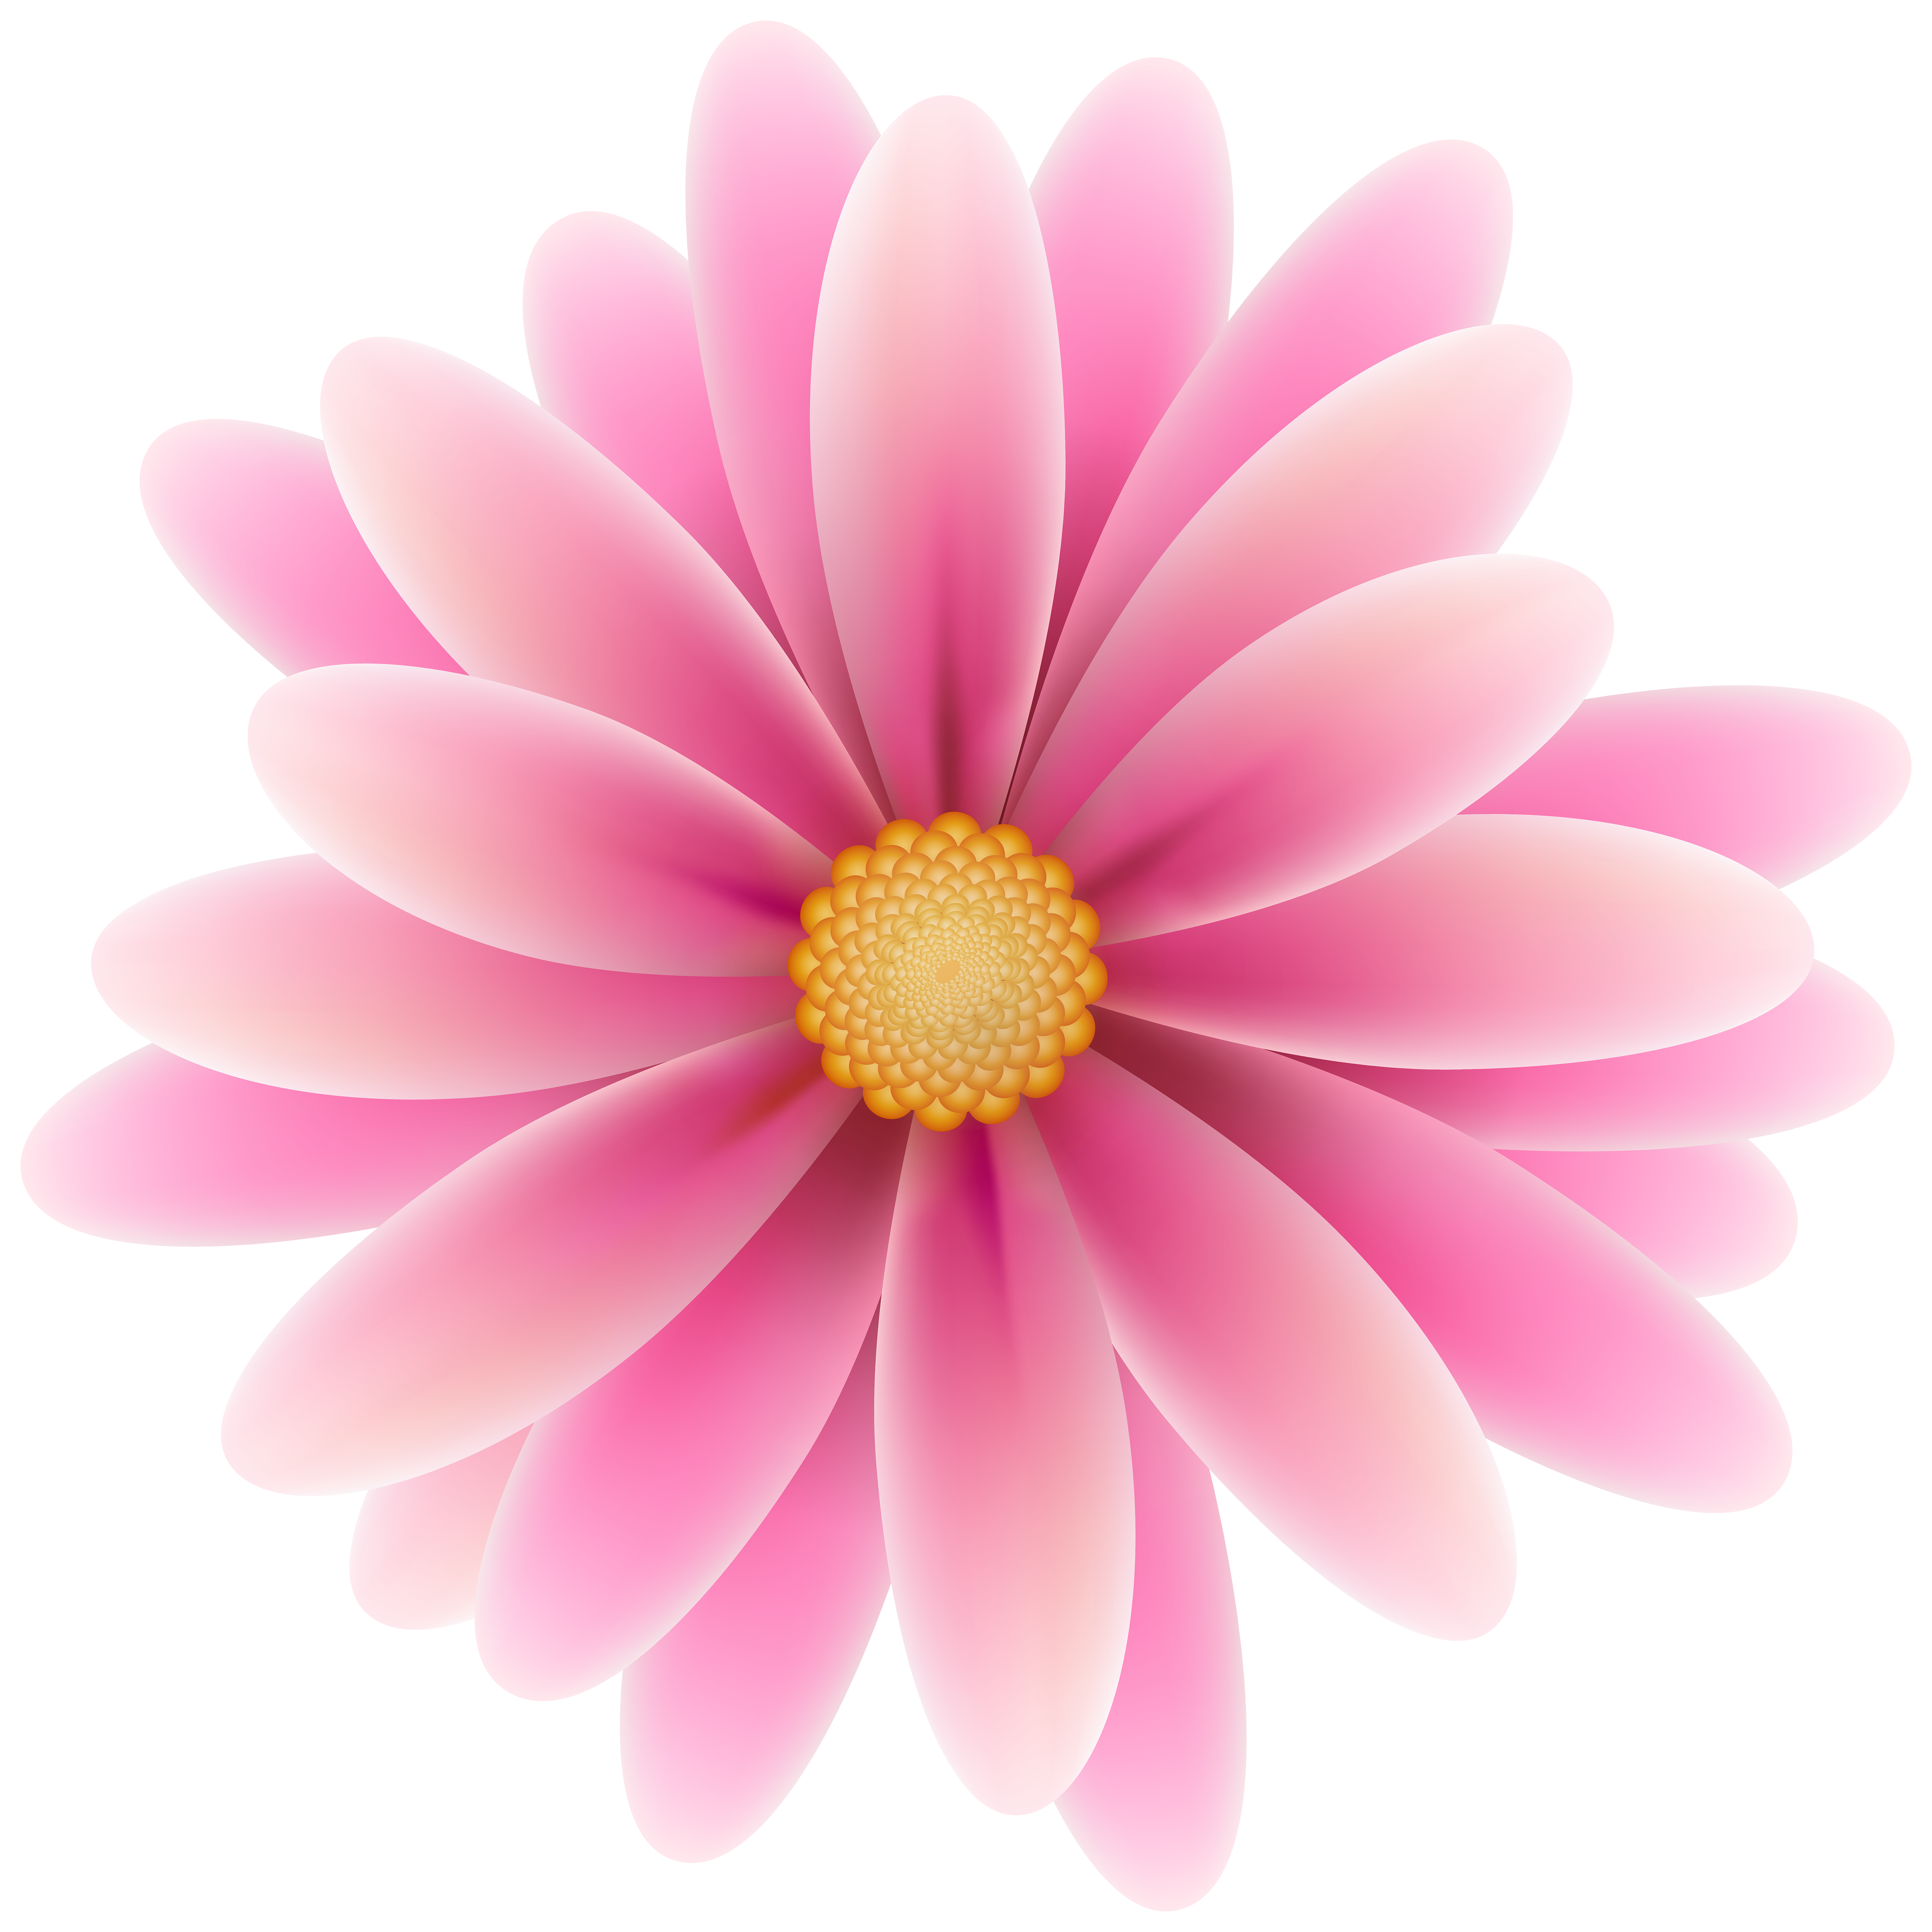 High res flower clipart picture free library Pink Flower Clip Art Image picture free library